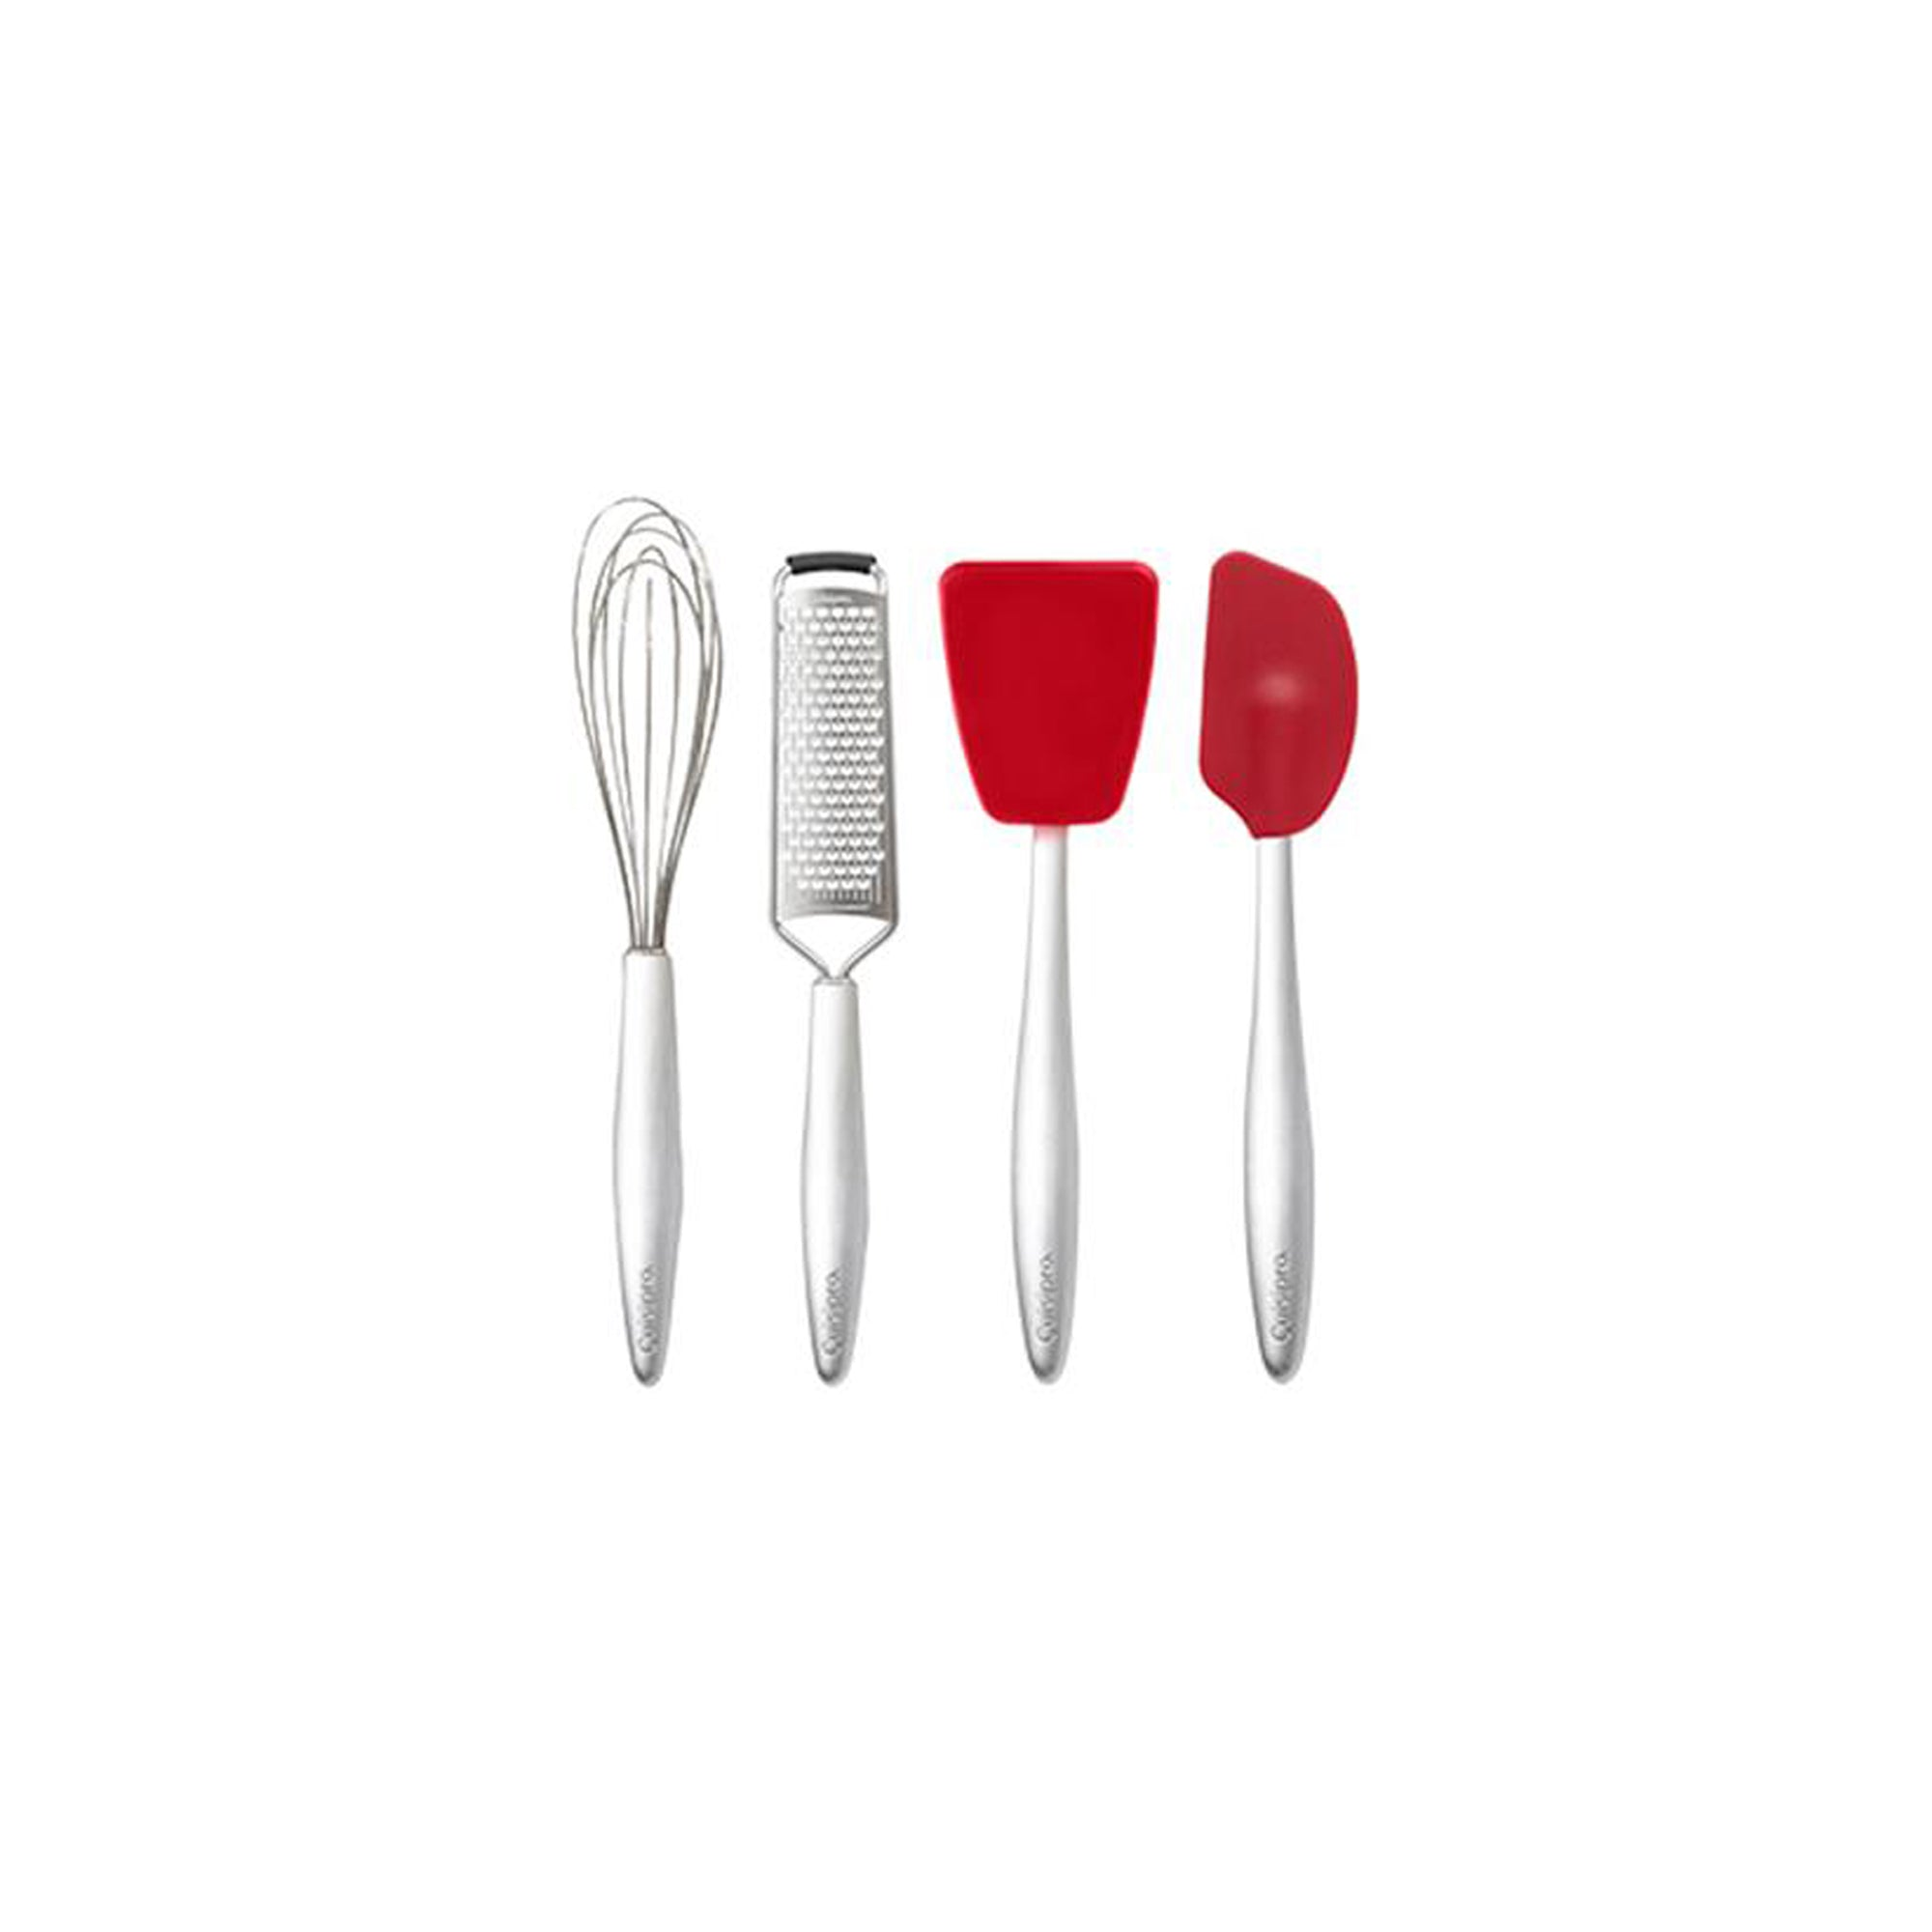 Piccolo Baking Set - 4 Piece Set